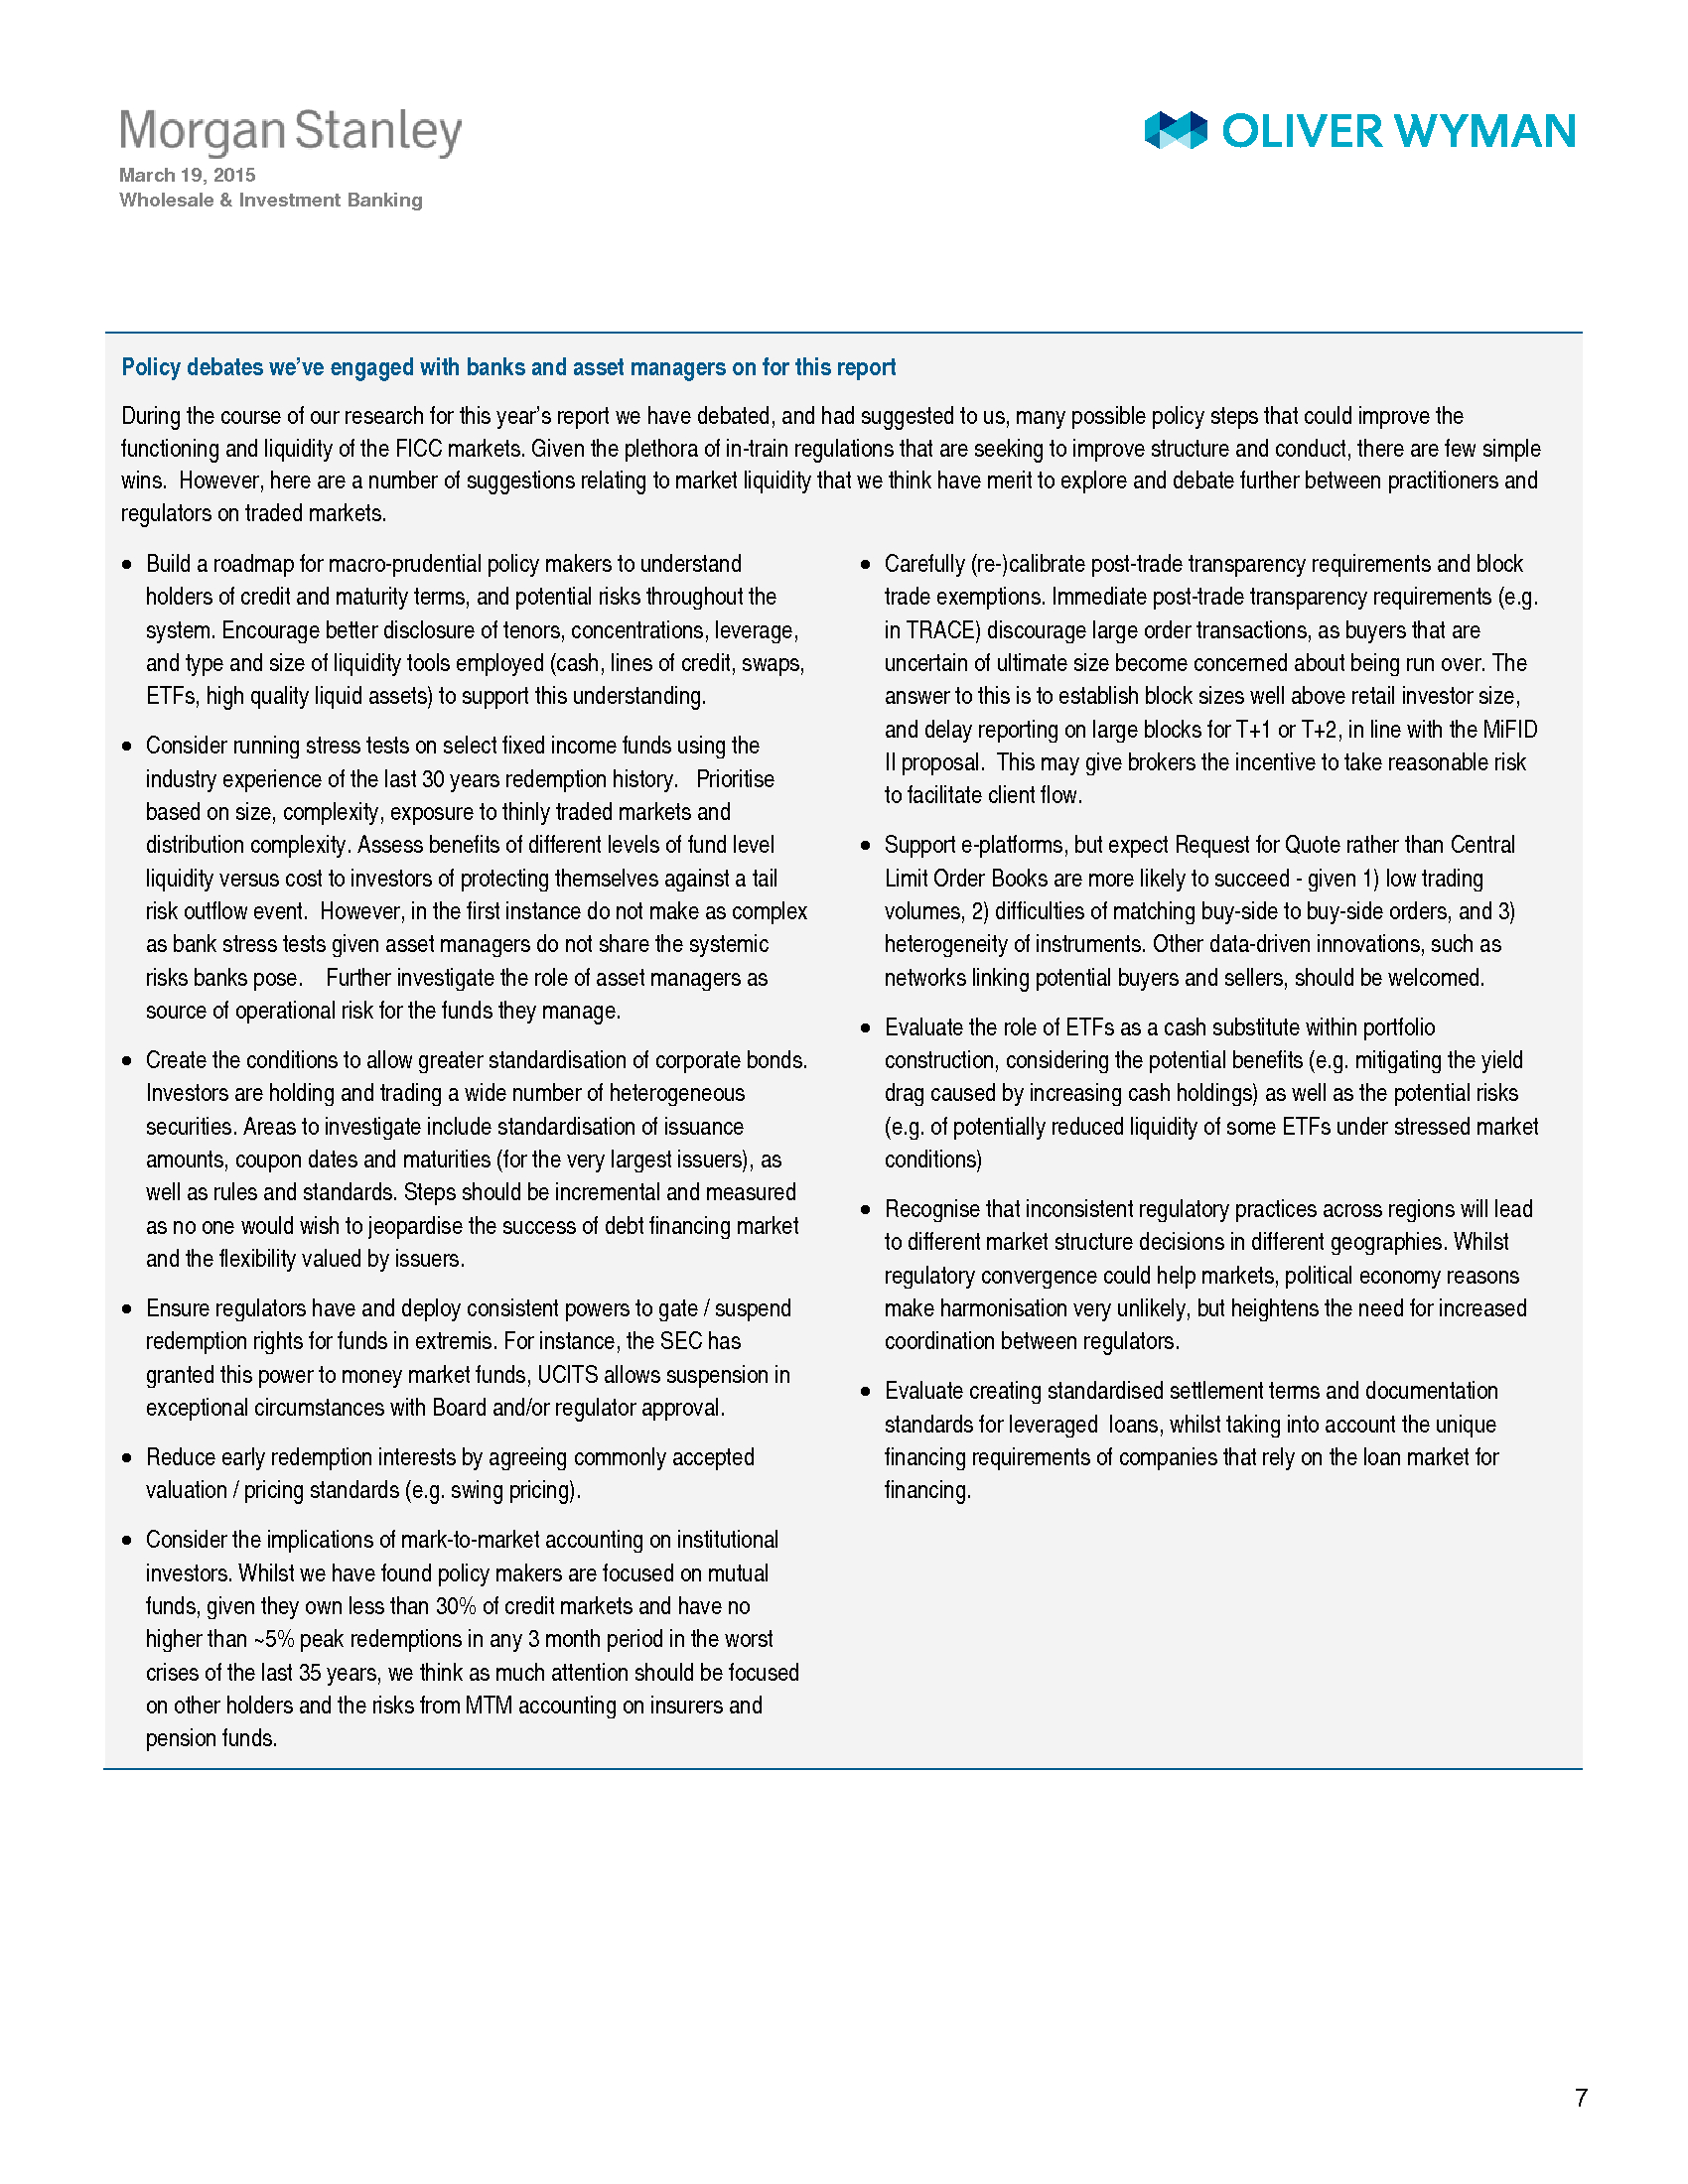 Advisorselect - Wholesale & Investment Banking Outlook - Oliver